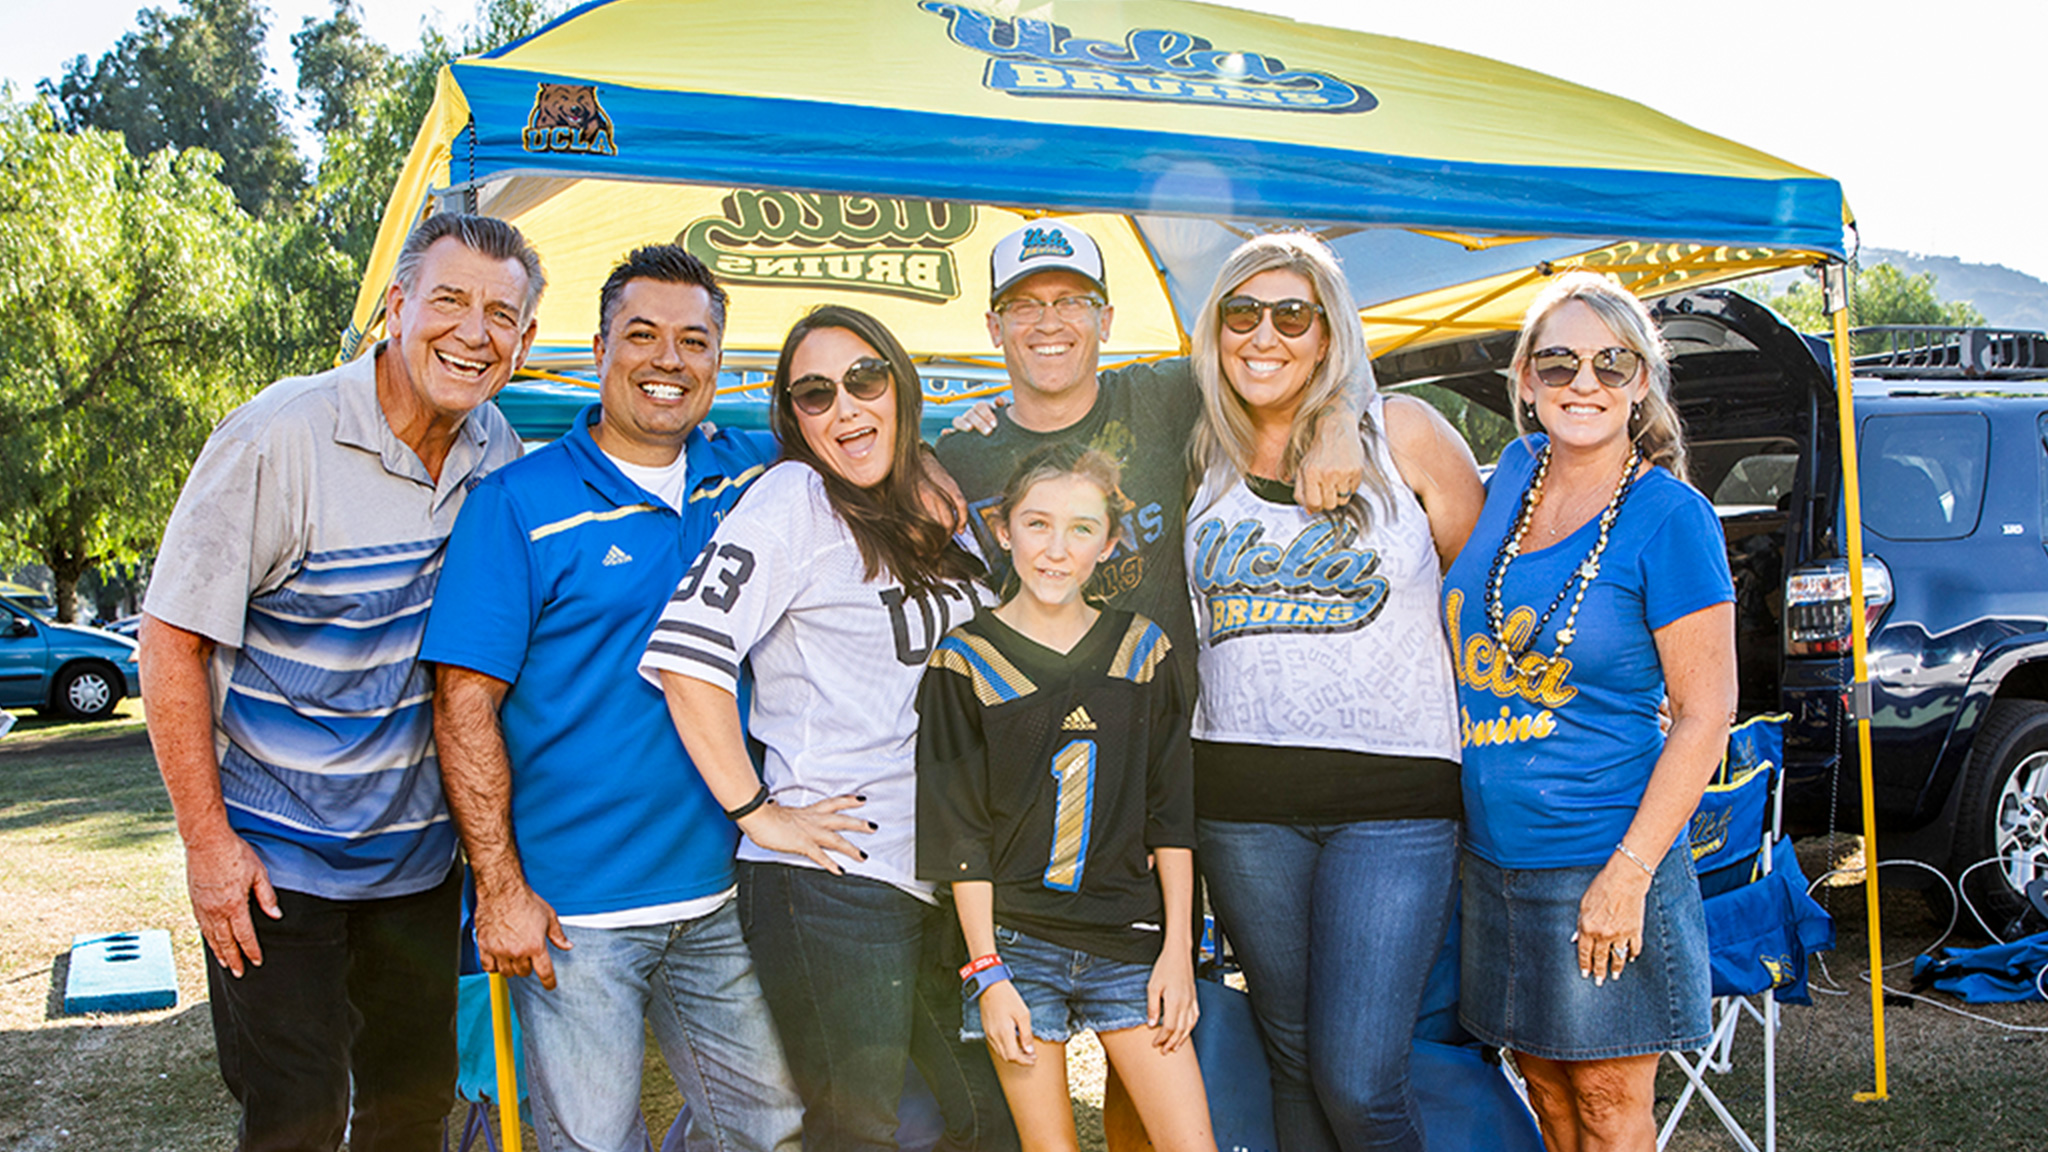 A family tailgates before seeing UCLA Football at the Rose Bowl during Bruin Family Weekend.